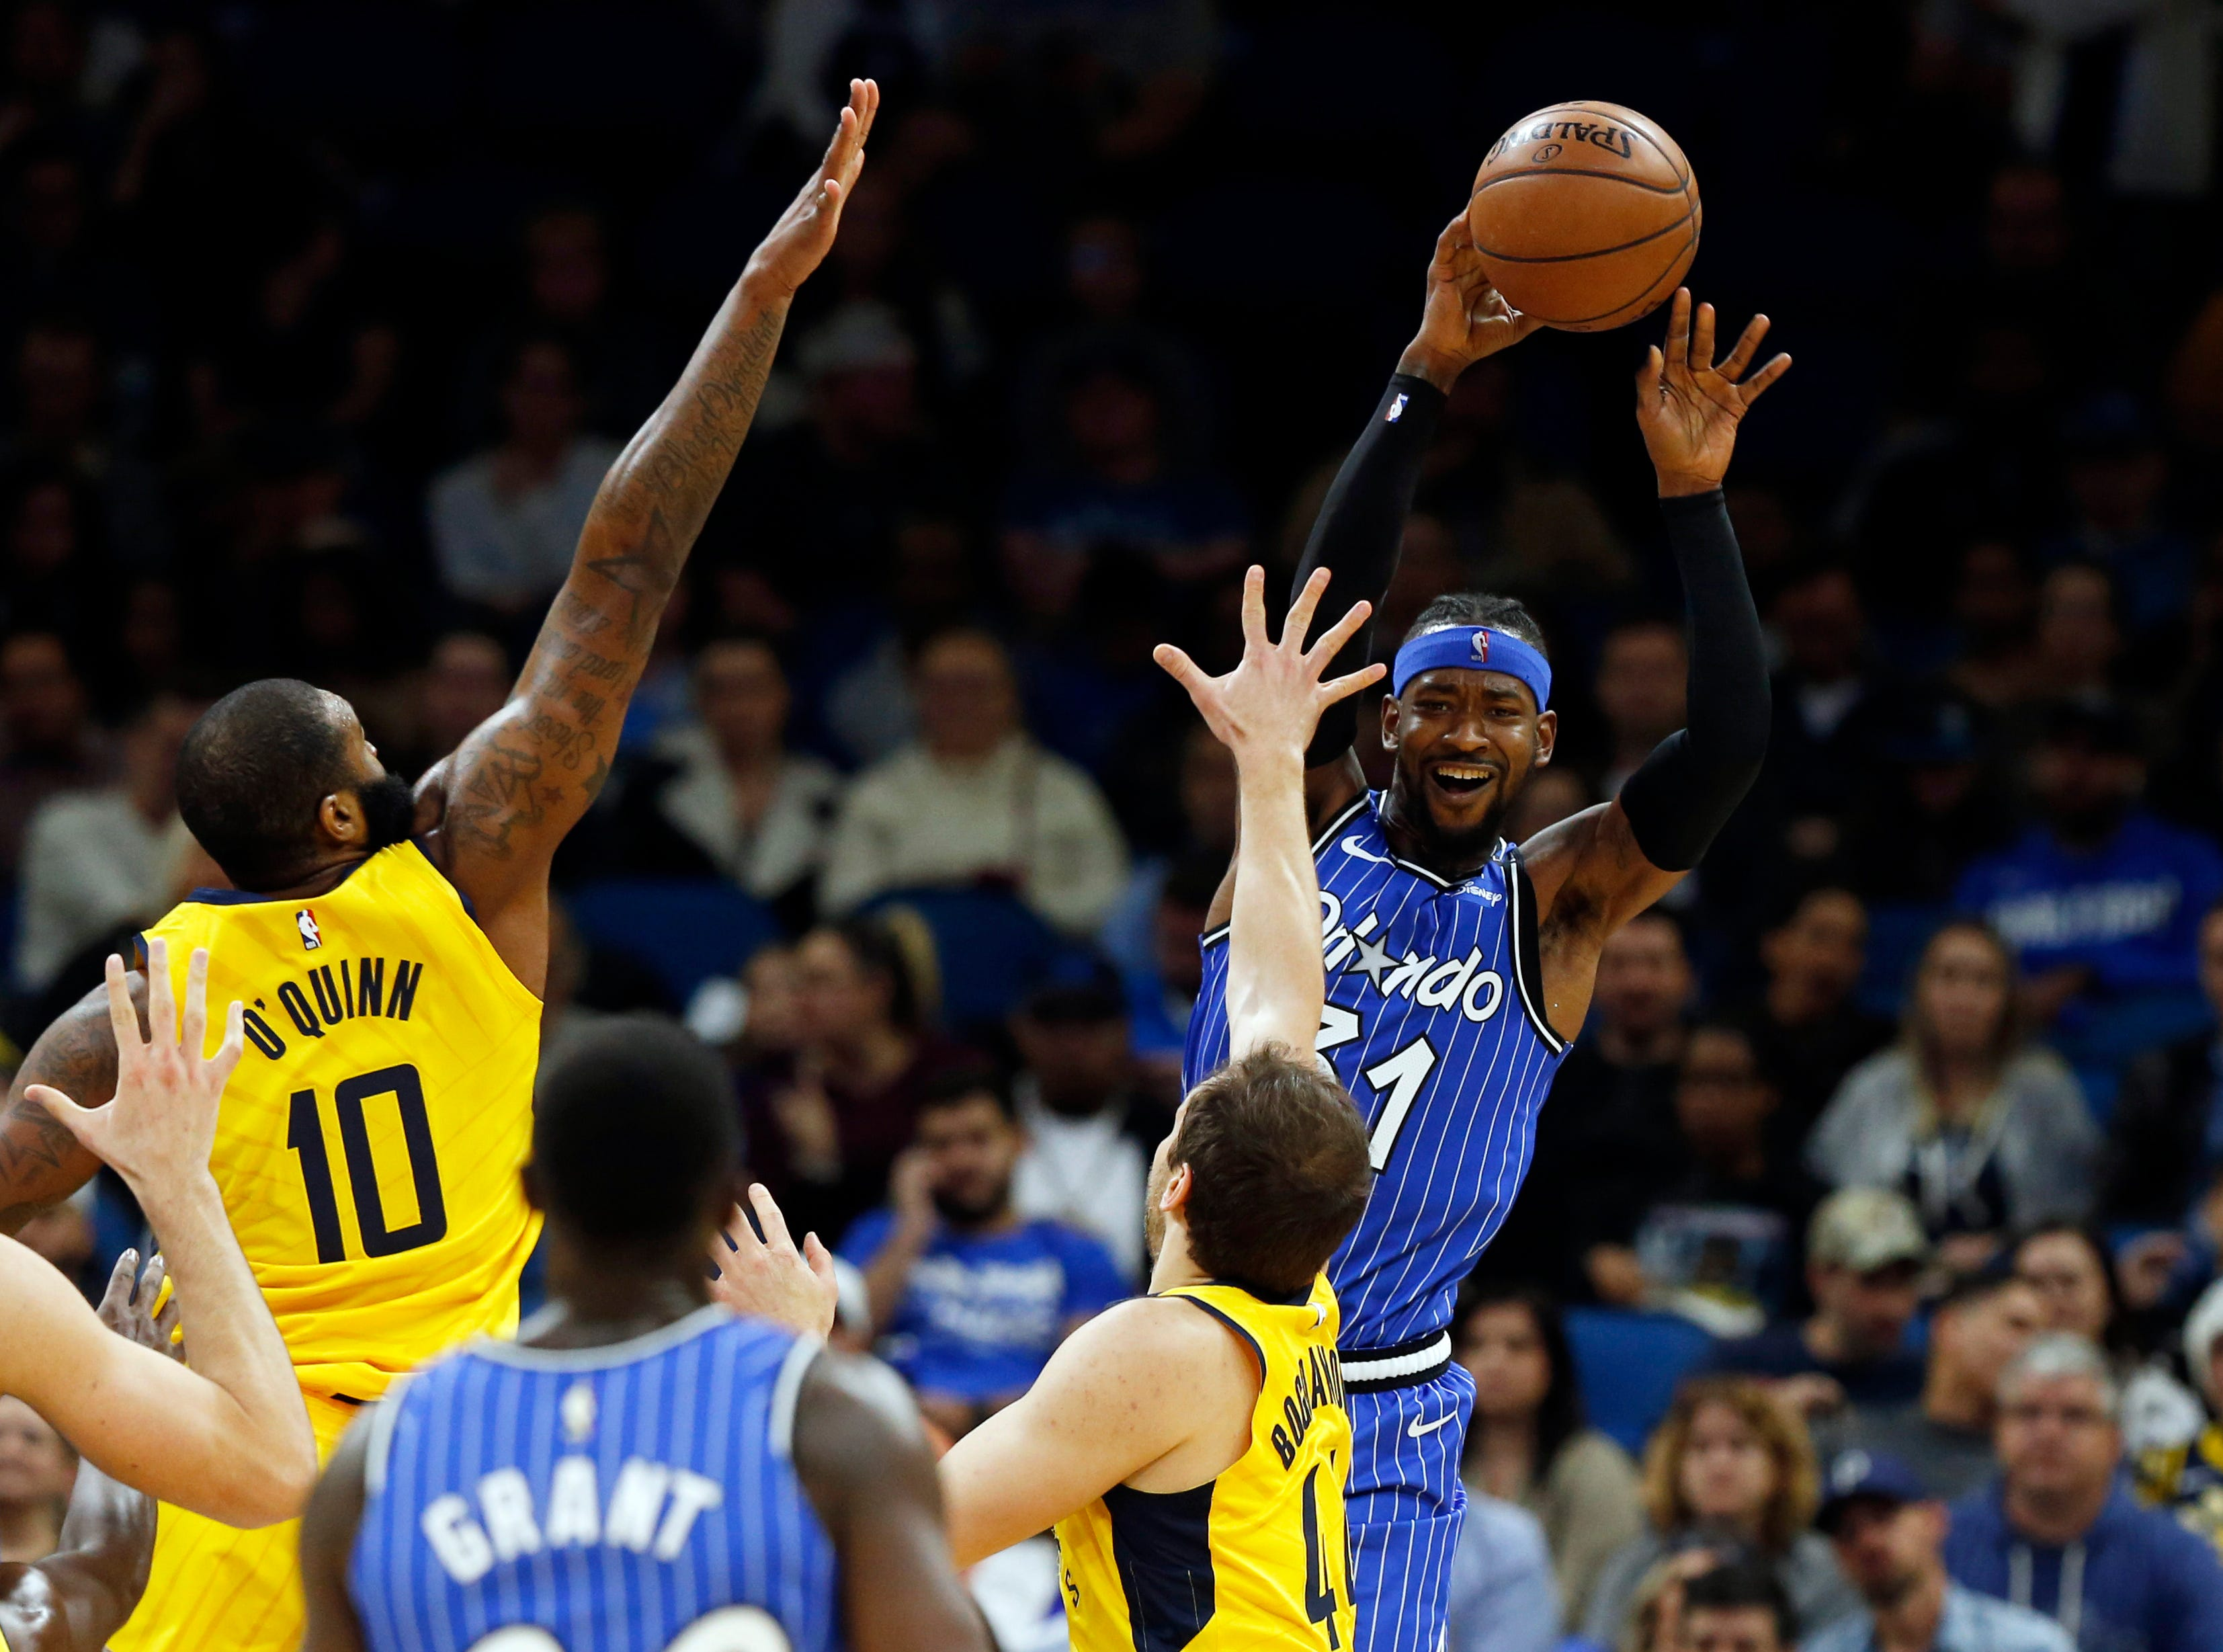 Dec 7, 2018; Orlando, FL, USA; Orlando Magic guard Terrence Ross (31) passes the ball over Indiana Pacers forward Bojan Bogdanovic (44) during the second quarter at Amway Center. Mandatory Credit: Kim Klement-USA TODAY Sports